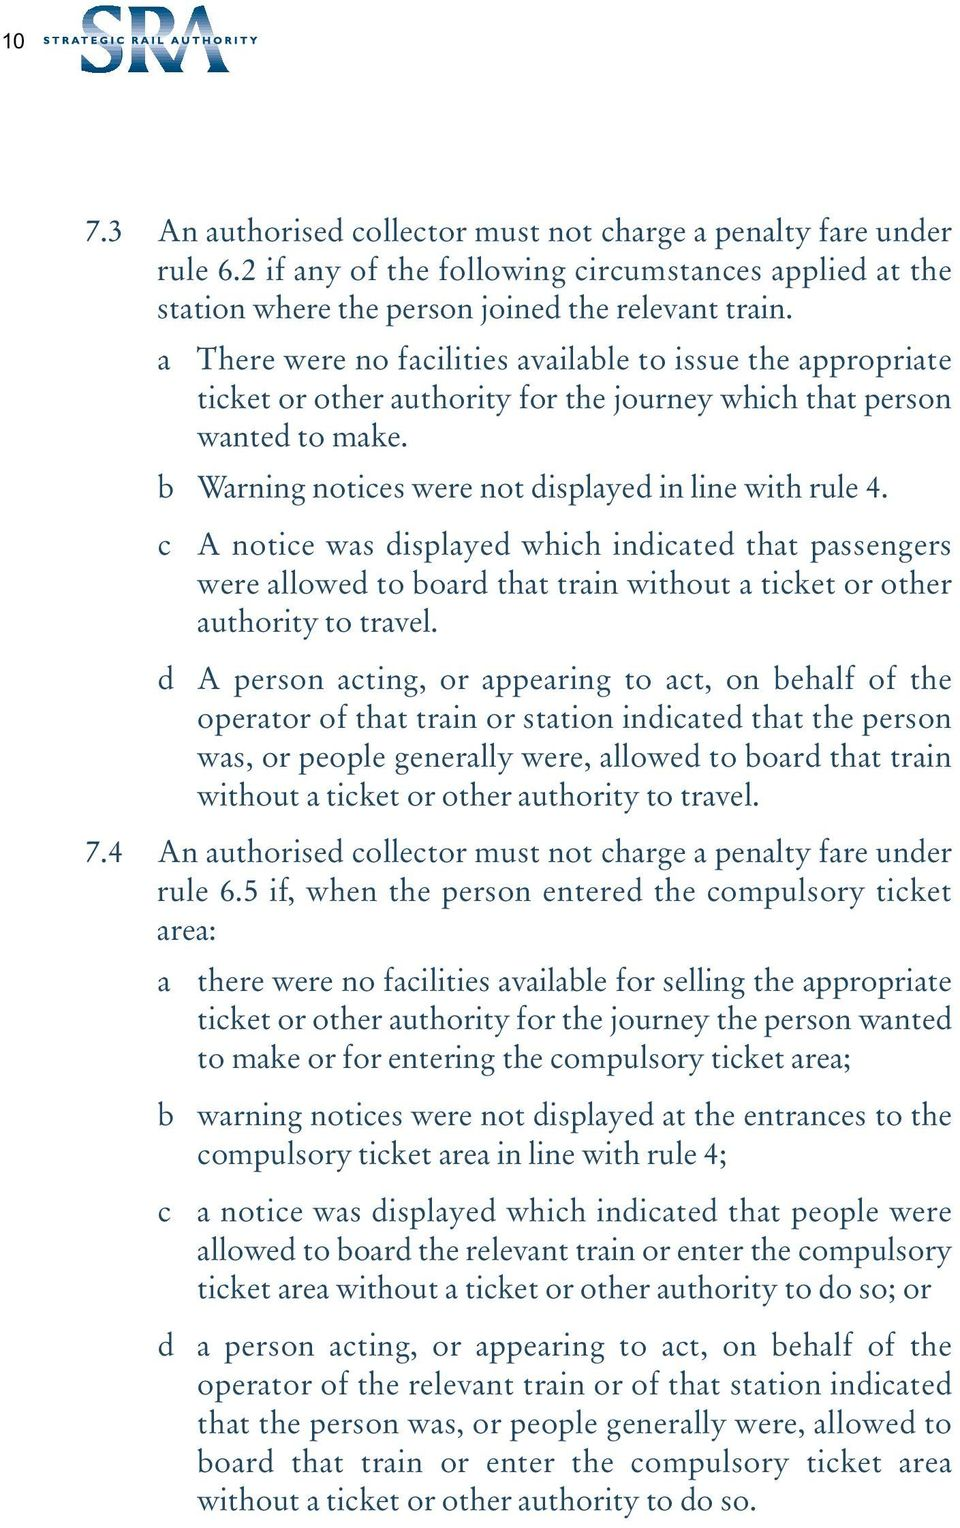 c A notice was displayed which indicated that passengers were allowed to board that train without a ticket or other authority to travel.